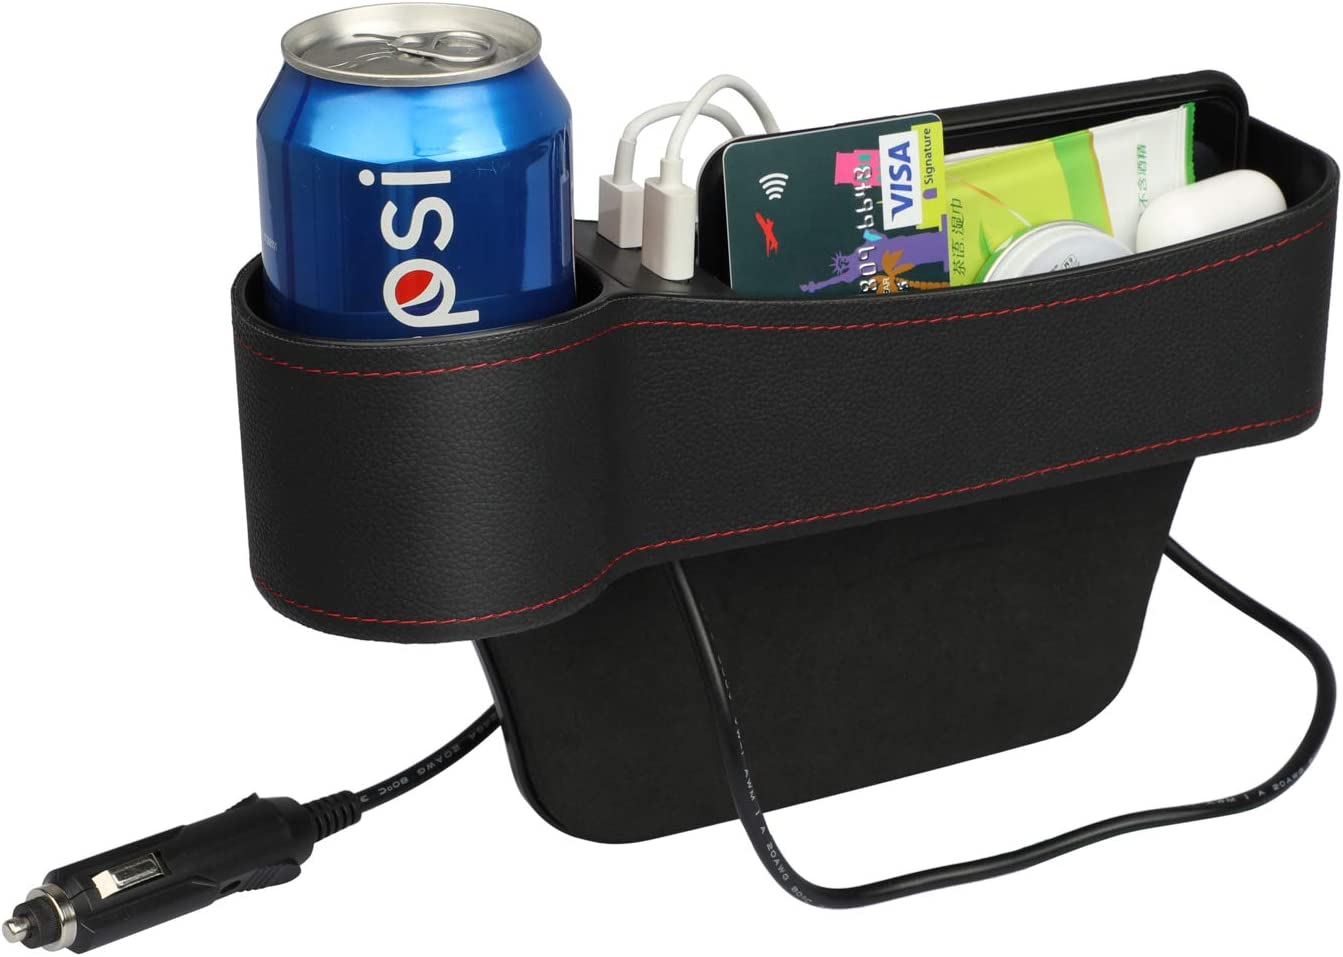 for Driver Side Car Seat Pockets PU Leather Car Console Side Organizer Seat Gap Filler with Big Cup Holder 2 USB Chargers